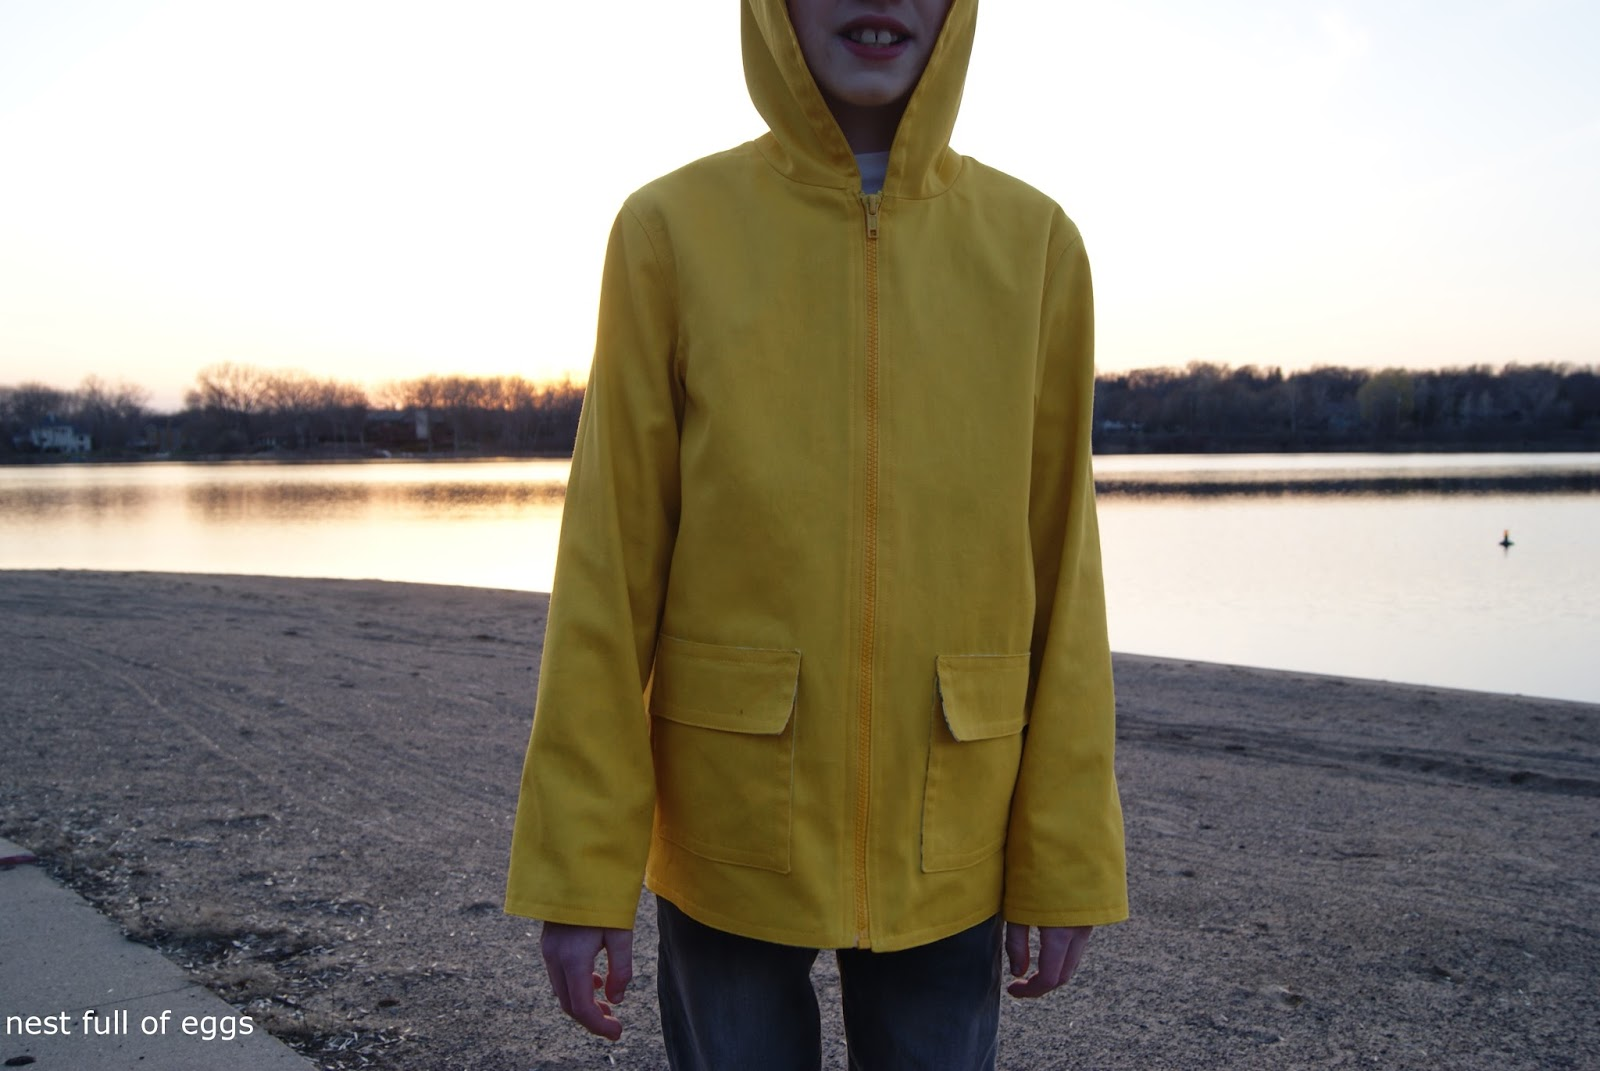 Spring Showers Jacket by nest full of eggs